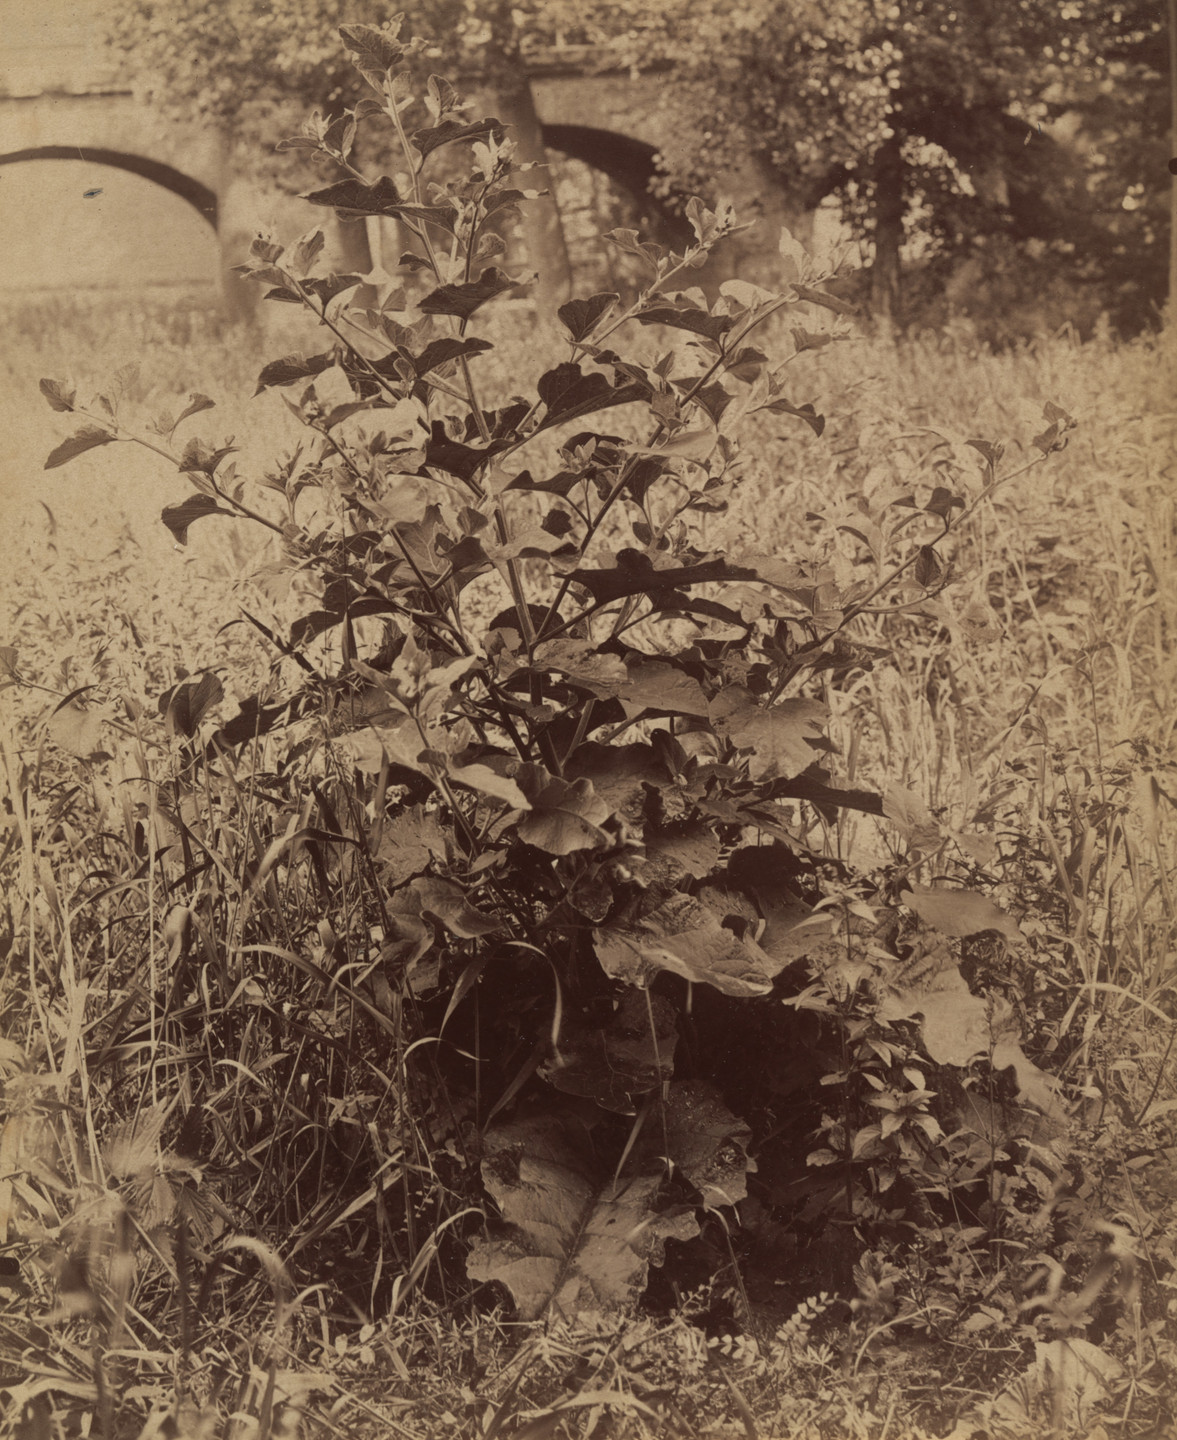 Eugène Atget. Untitled (plant). Before 1900